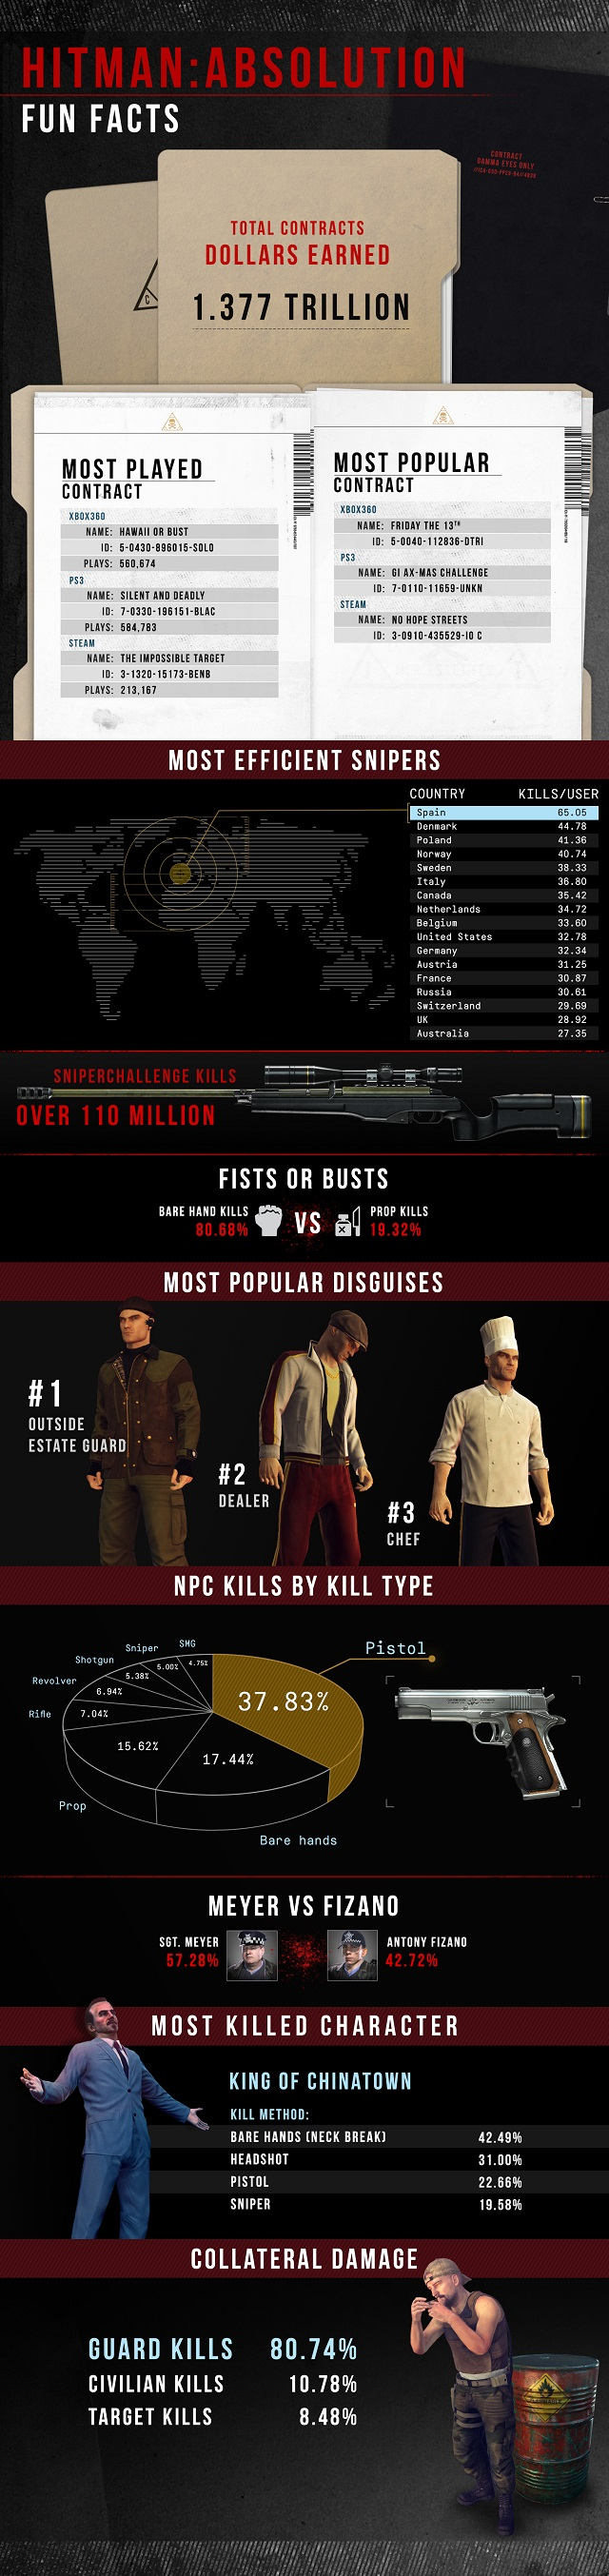 Hitman-Absolution-infographic